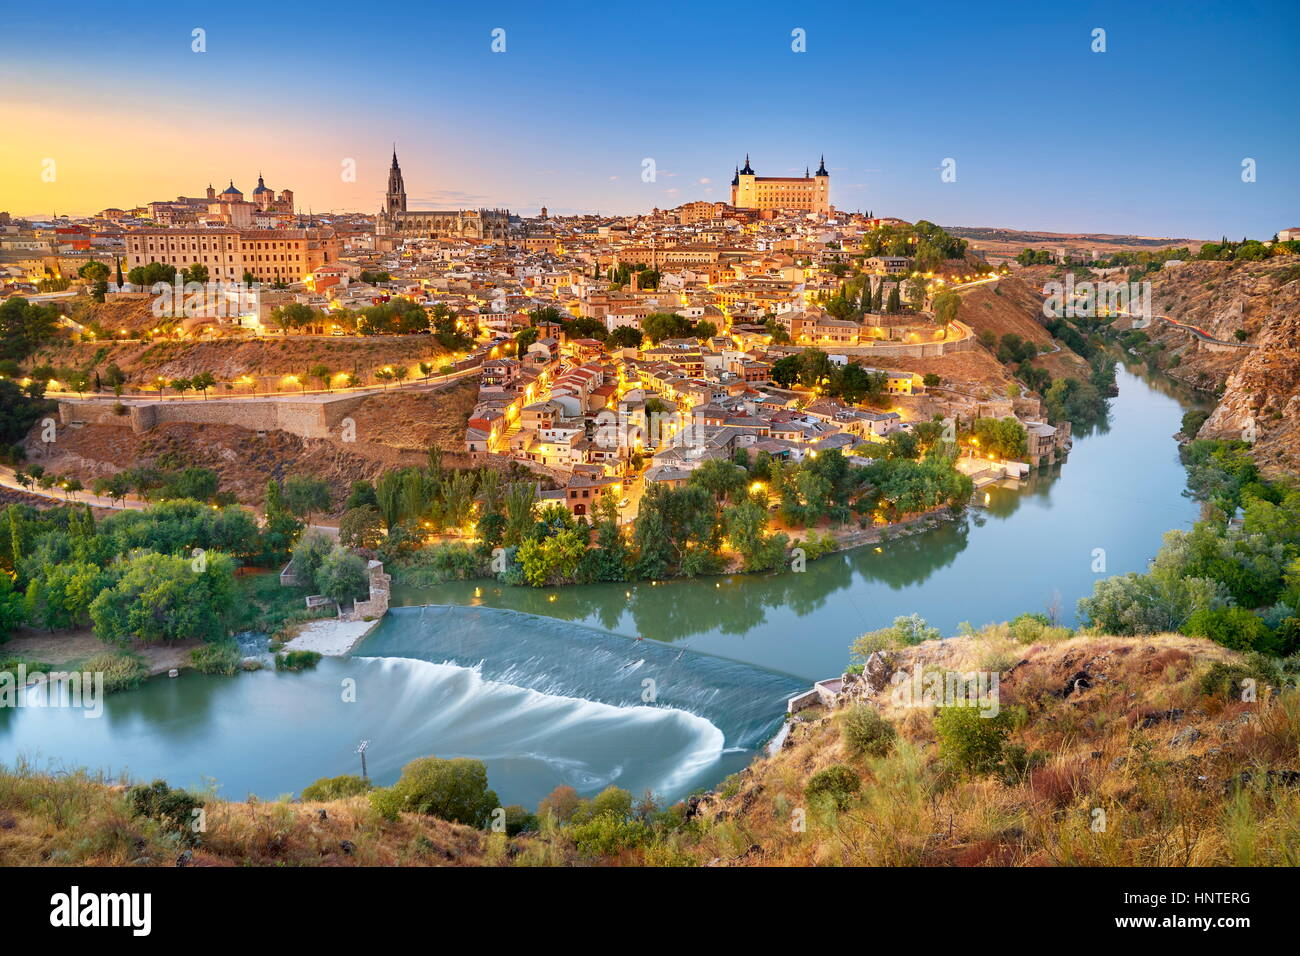 Toledo - old town skyline, Spain - Stock Image